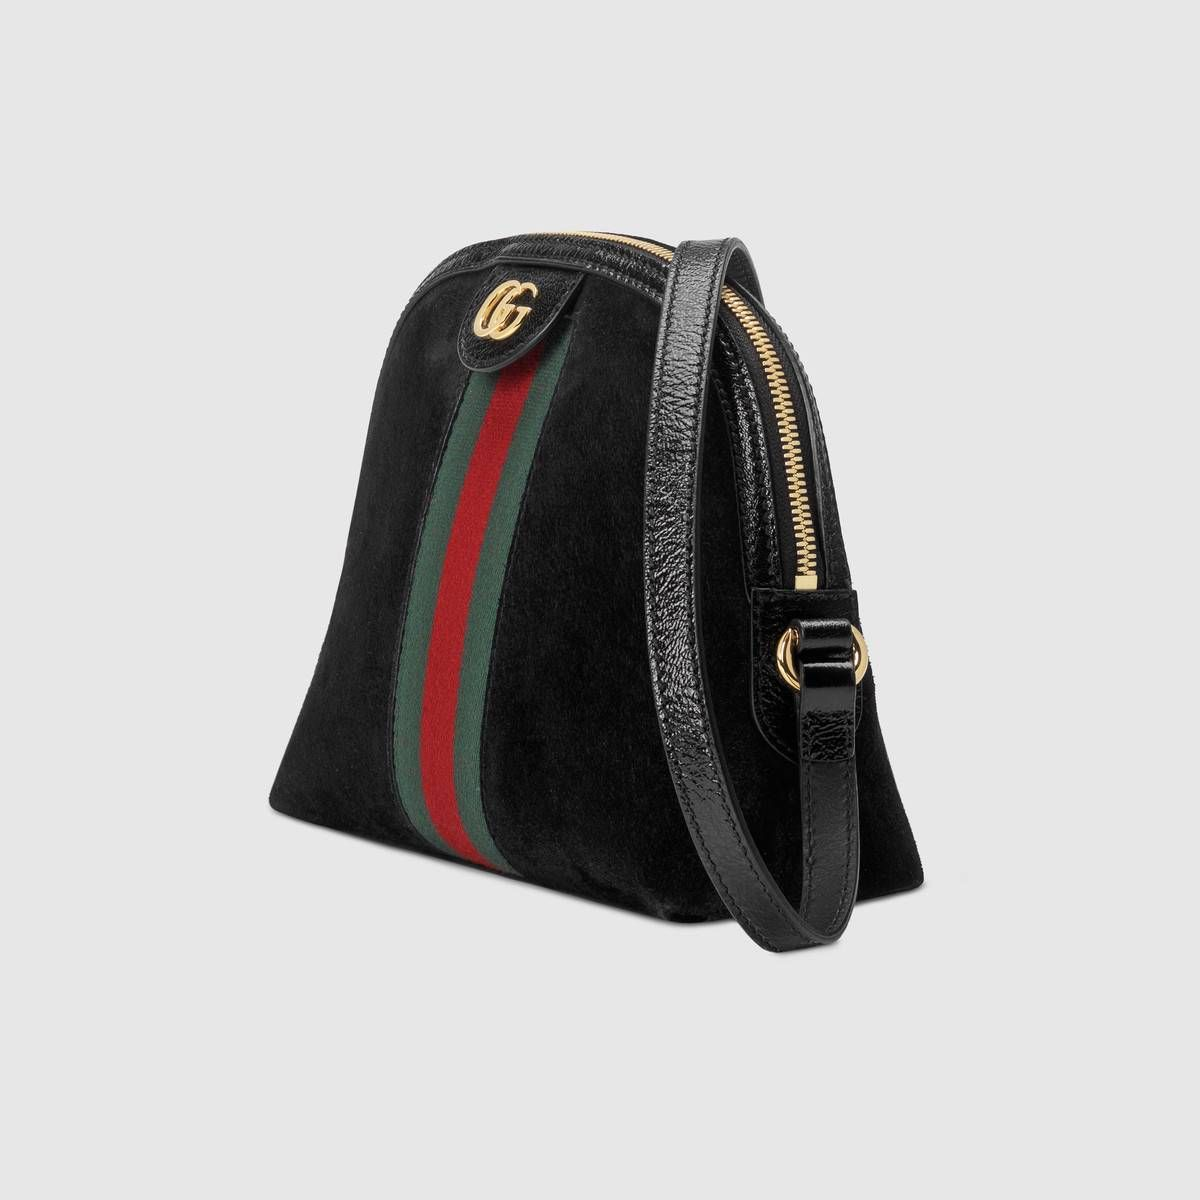 ec7e499d77 Ophidia small shoulder bag - Gucci Gifts for Women 499621D6ZYG1060 ...